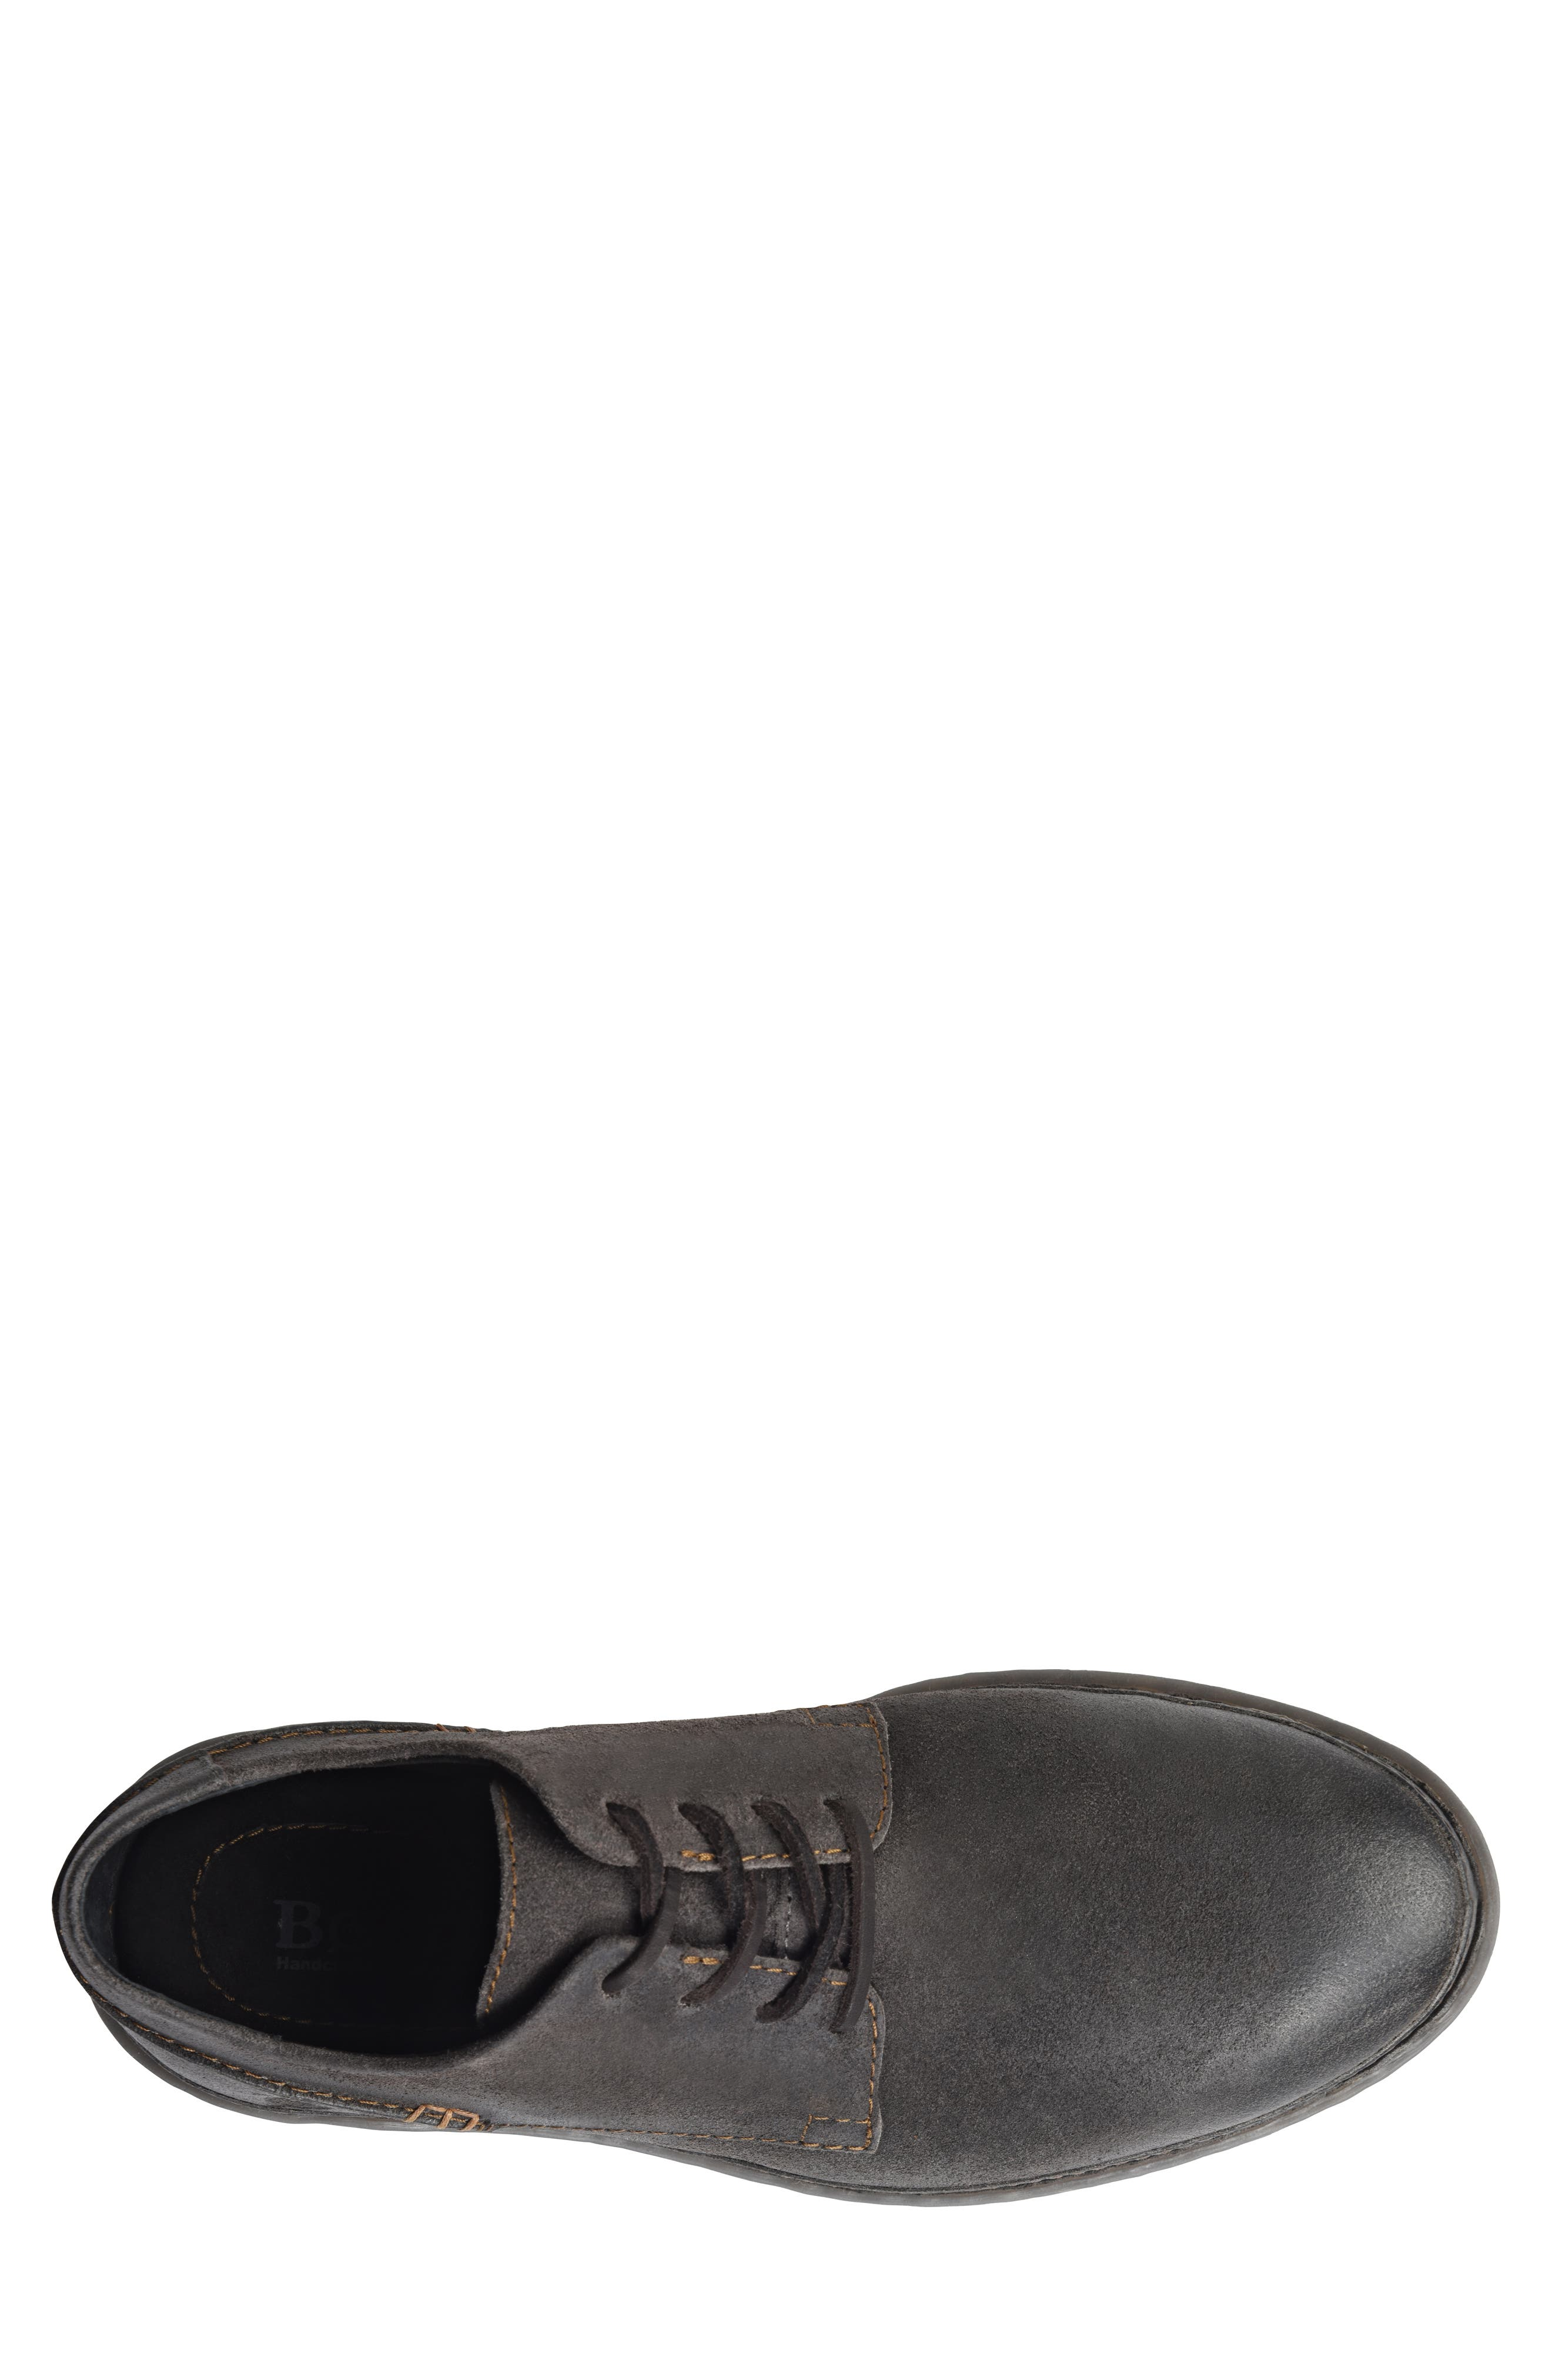 Gilles Plain Toe Derby,                             Alternate thumbnail 5, color,                             DARK GREY LEATHER